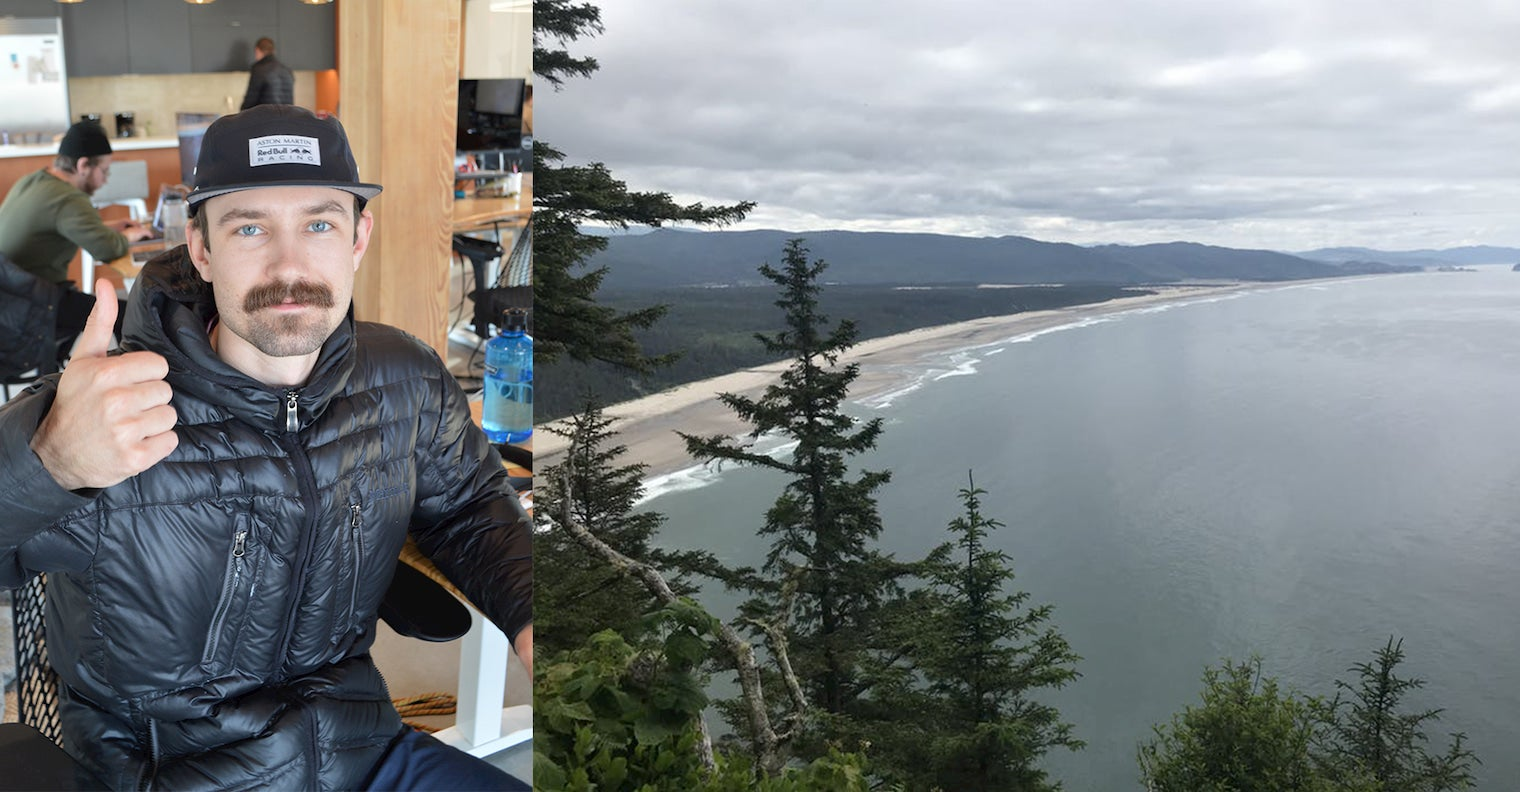 On the right photo of guy at his desk giving a thumbs up, left image of a beach landscape behind an evergreen forest.